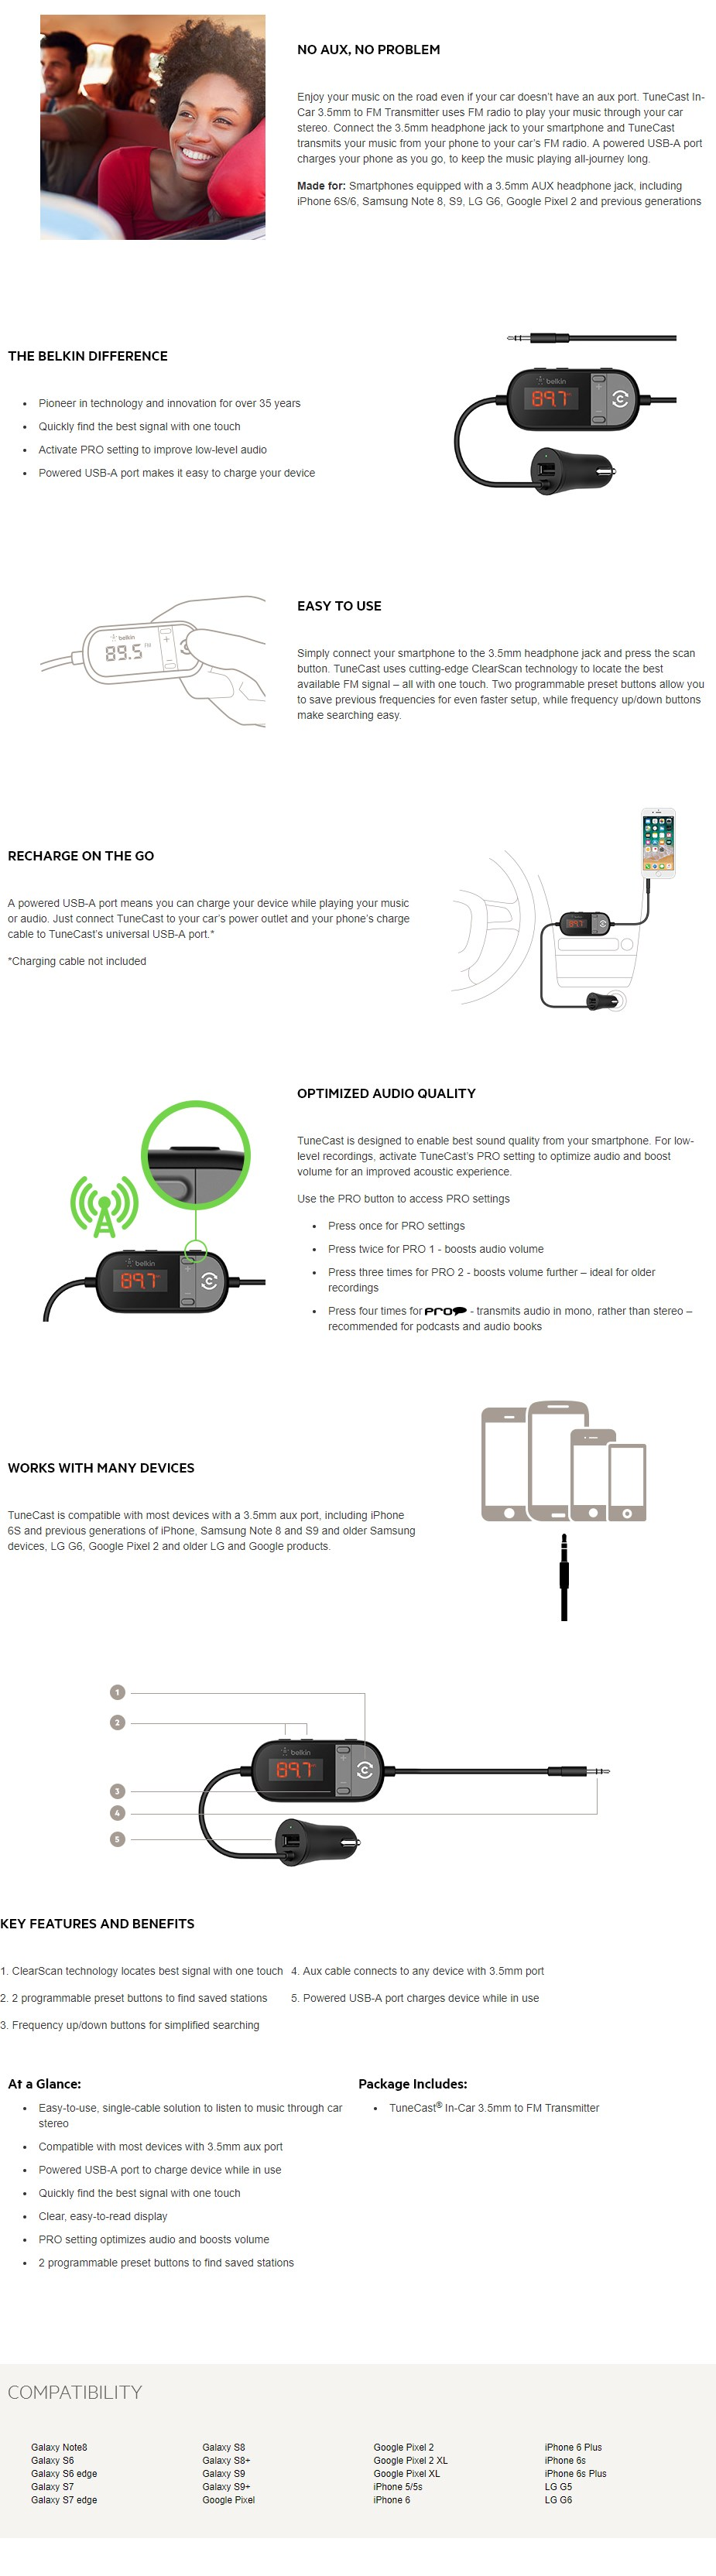 Belkin Tunecast In-Car 3.5mm to FM Transmitter - Overview 1